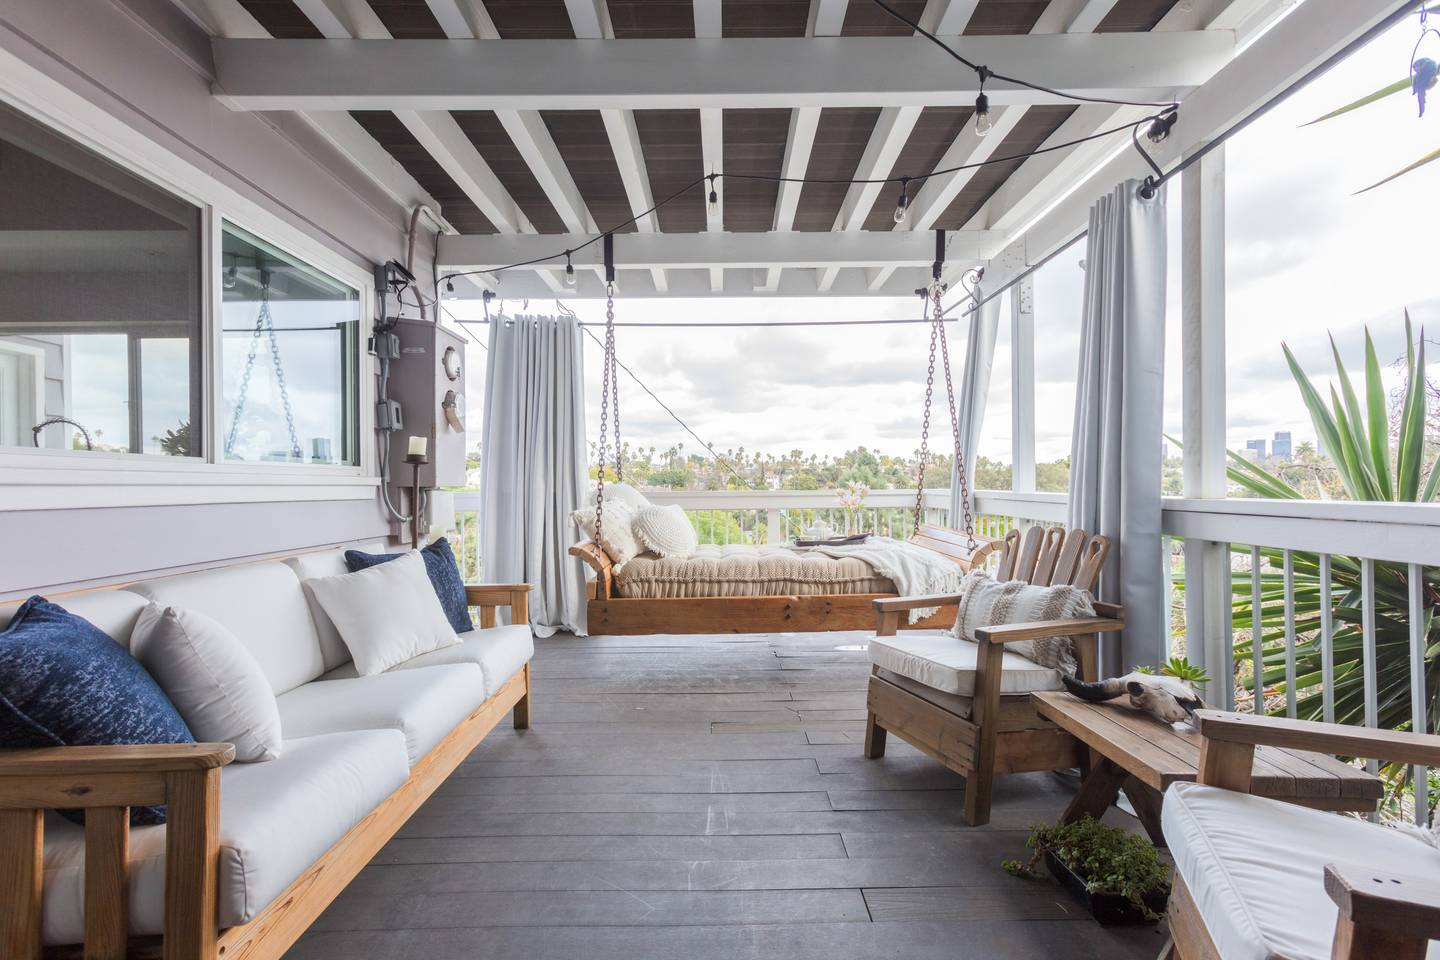 luxury hill house with porch swing los angeles